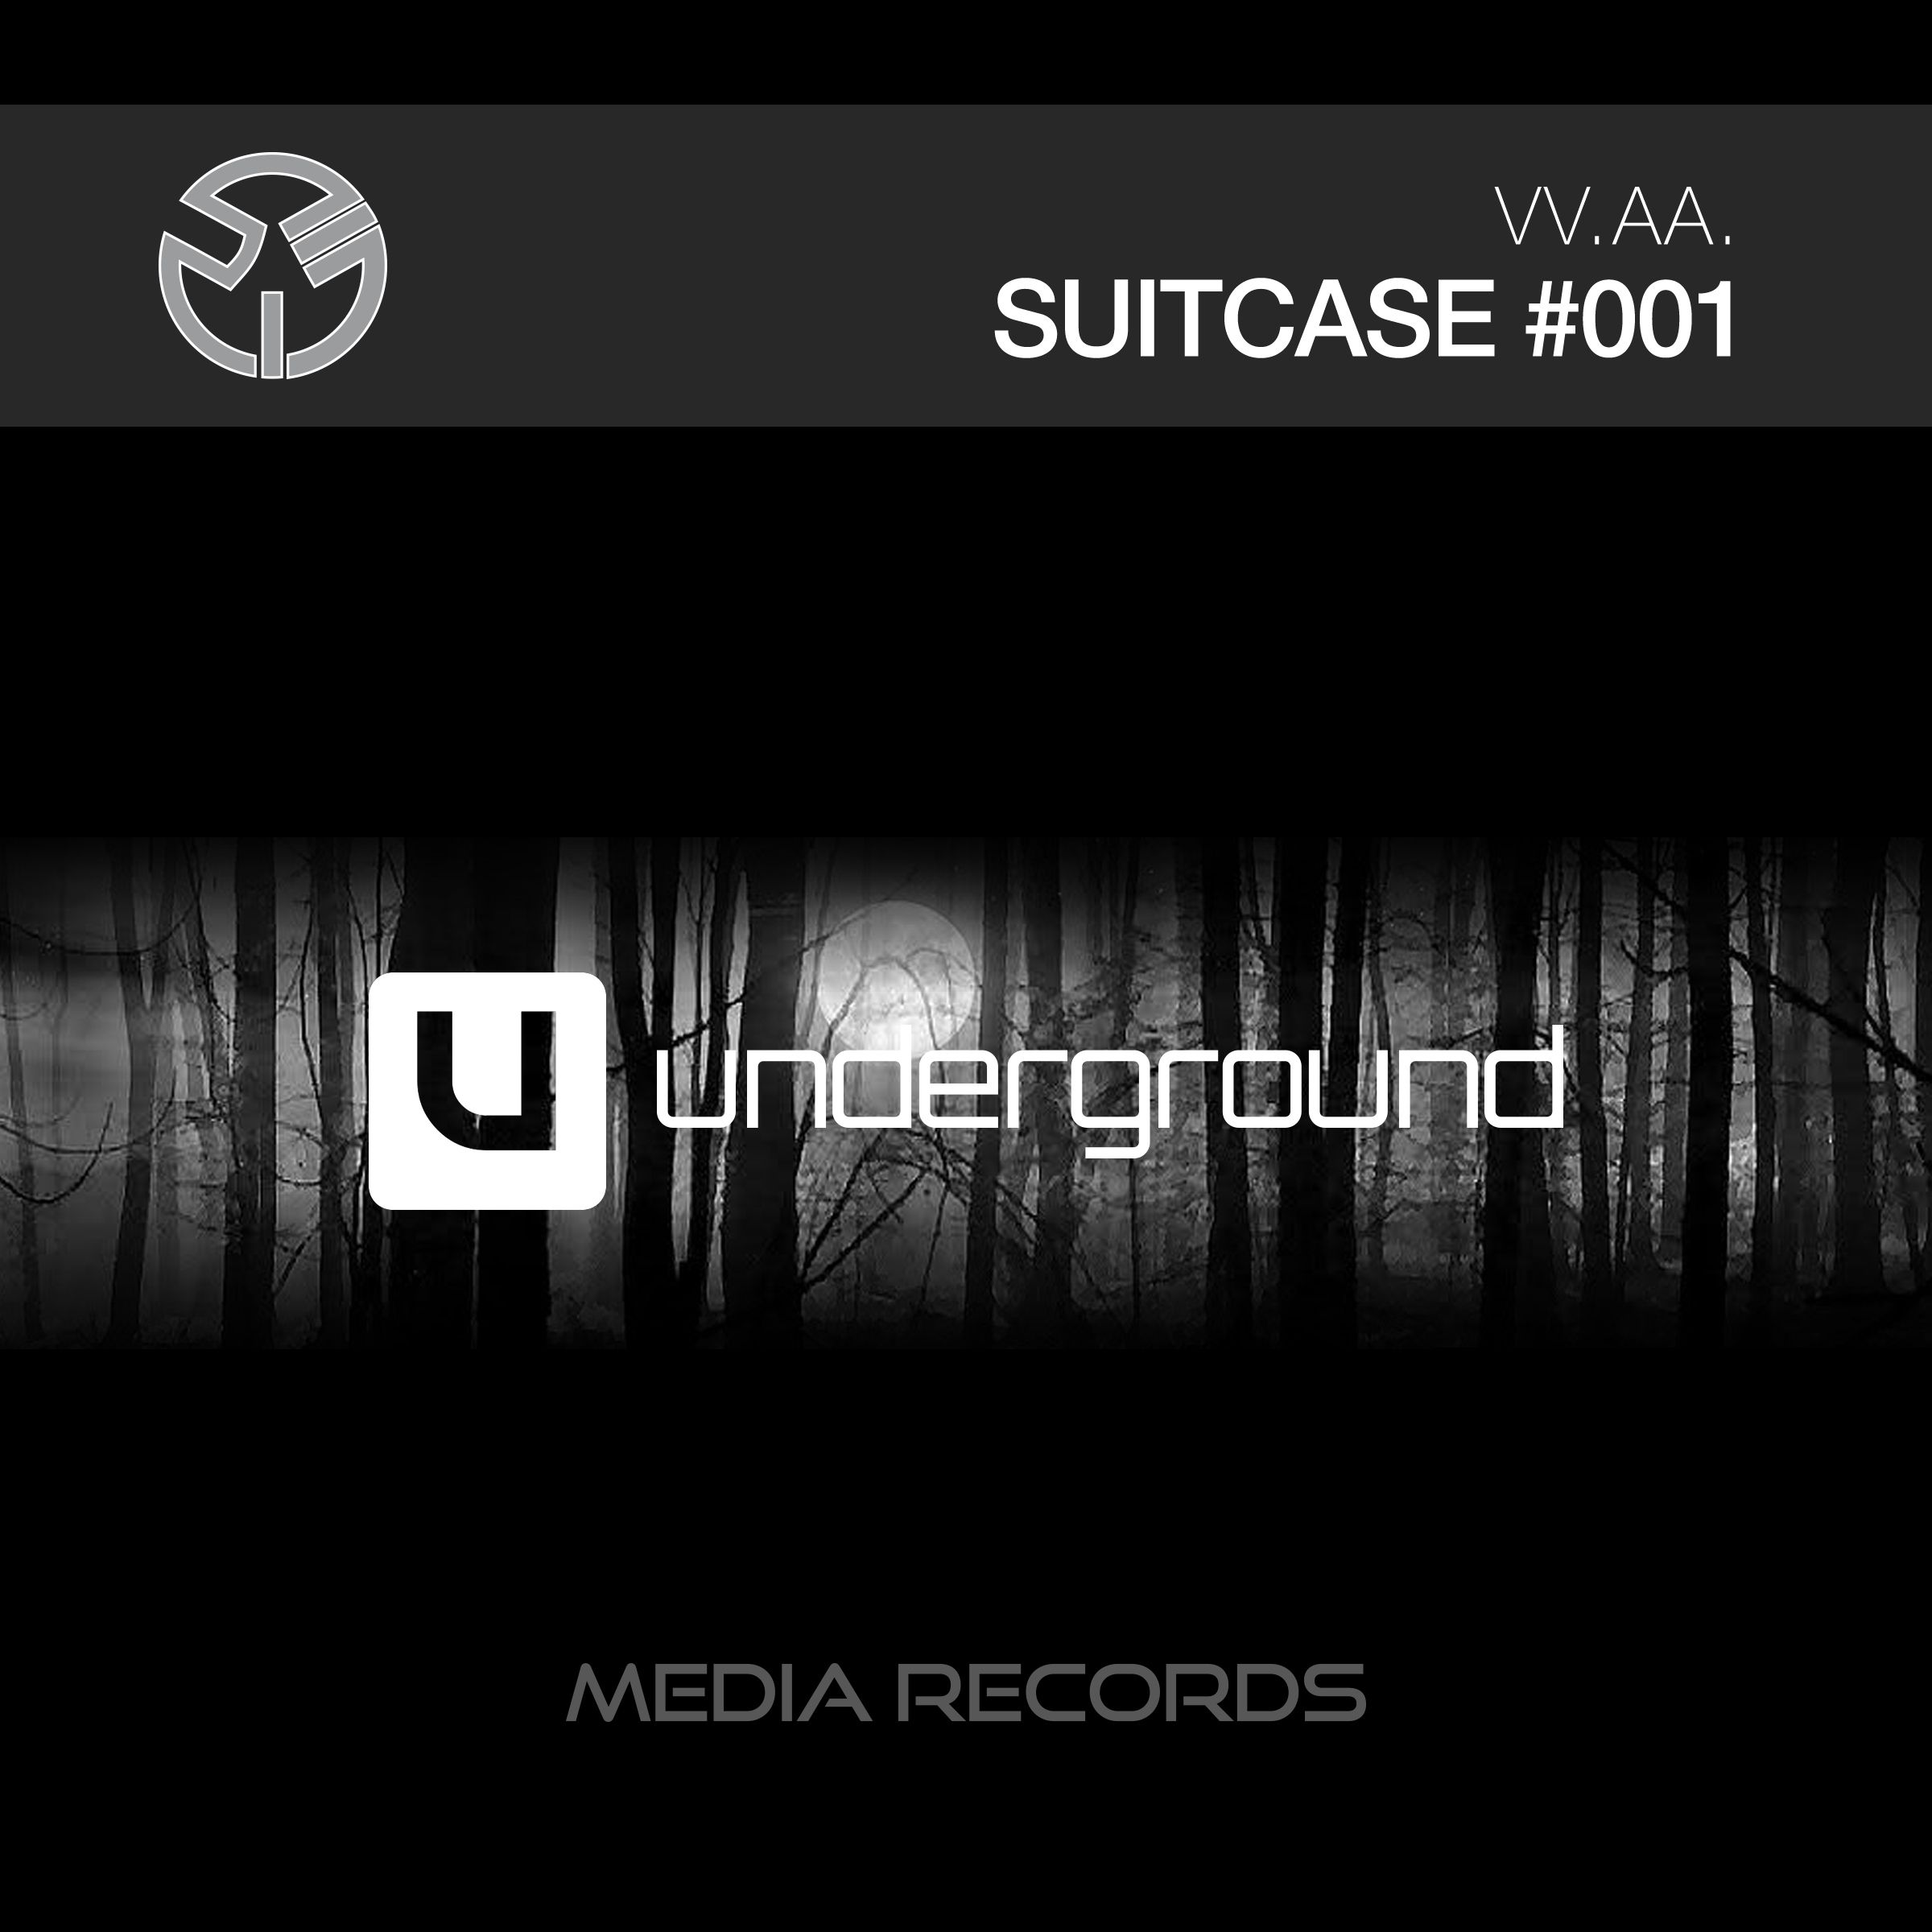 #housemusic Suitcase #001: Underground launches the Suitcase project, which will develop over a series of EPs collecting the music of new…